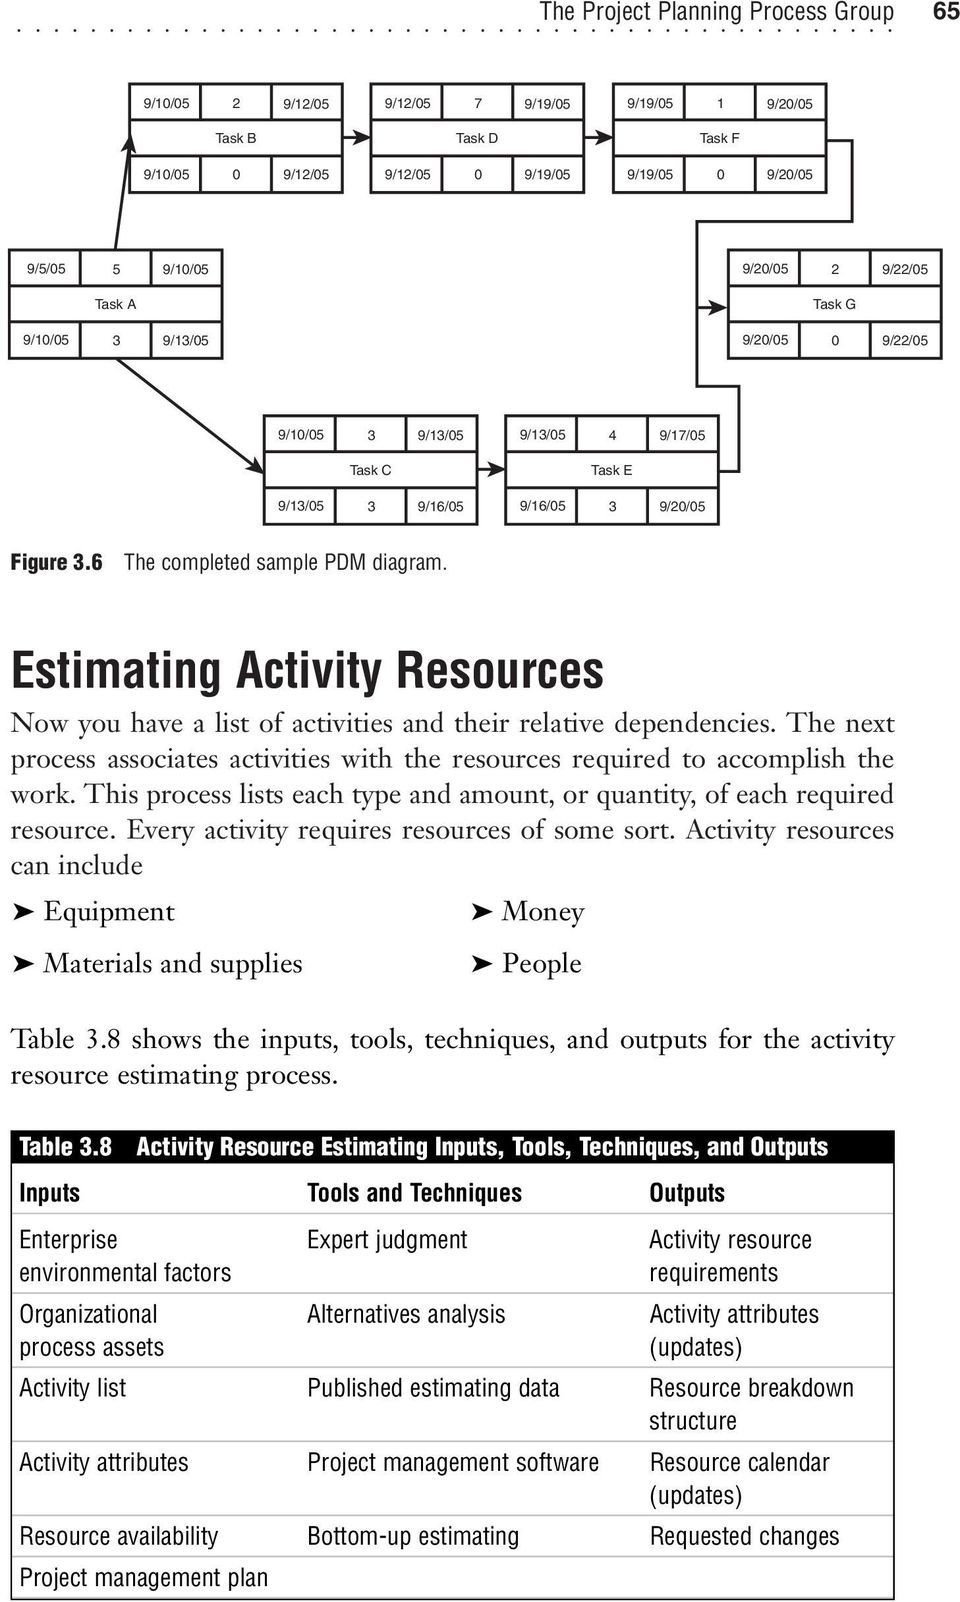 Estimating Activity Resources Now you have a list of activities and their relative dependencies. The next process associates activities with the resources required to accomplish the work.